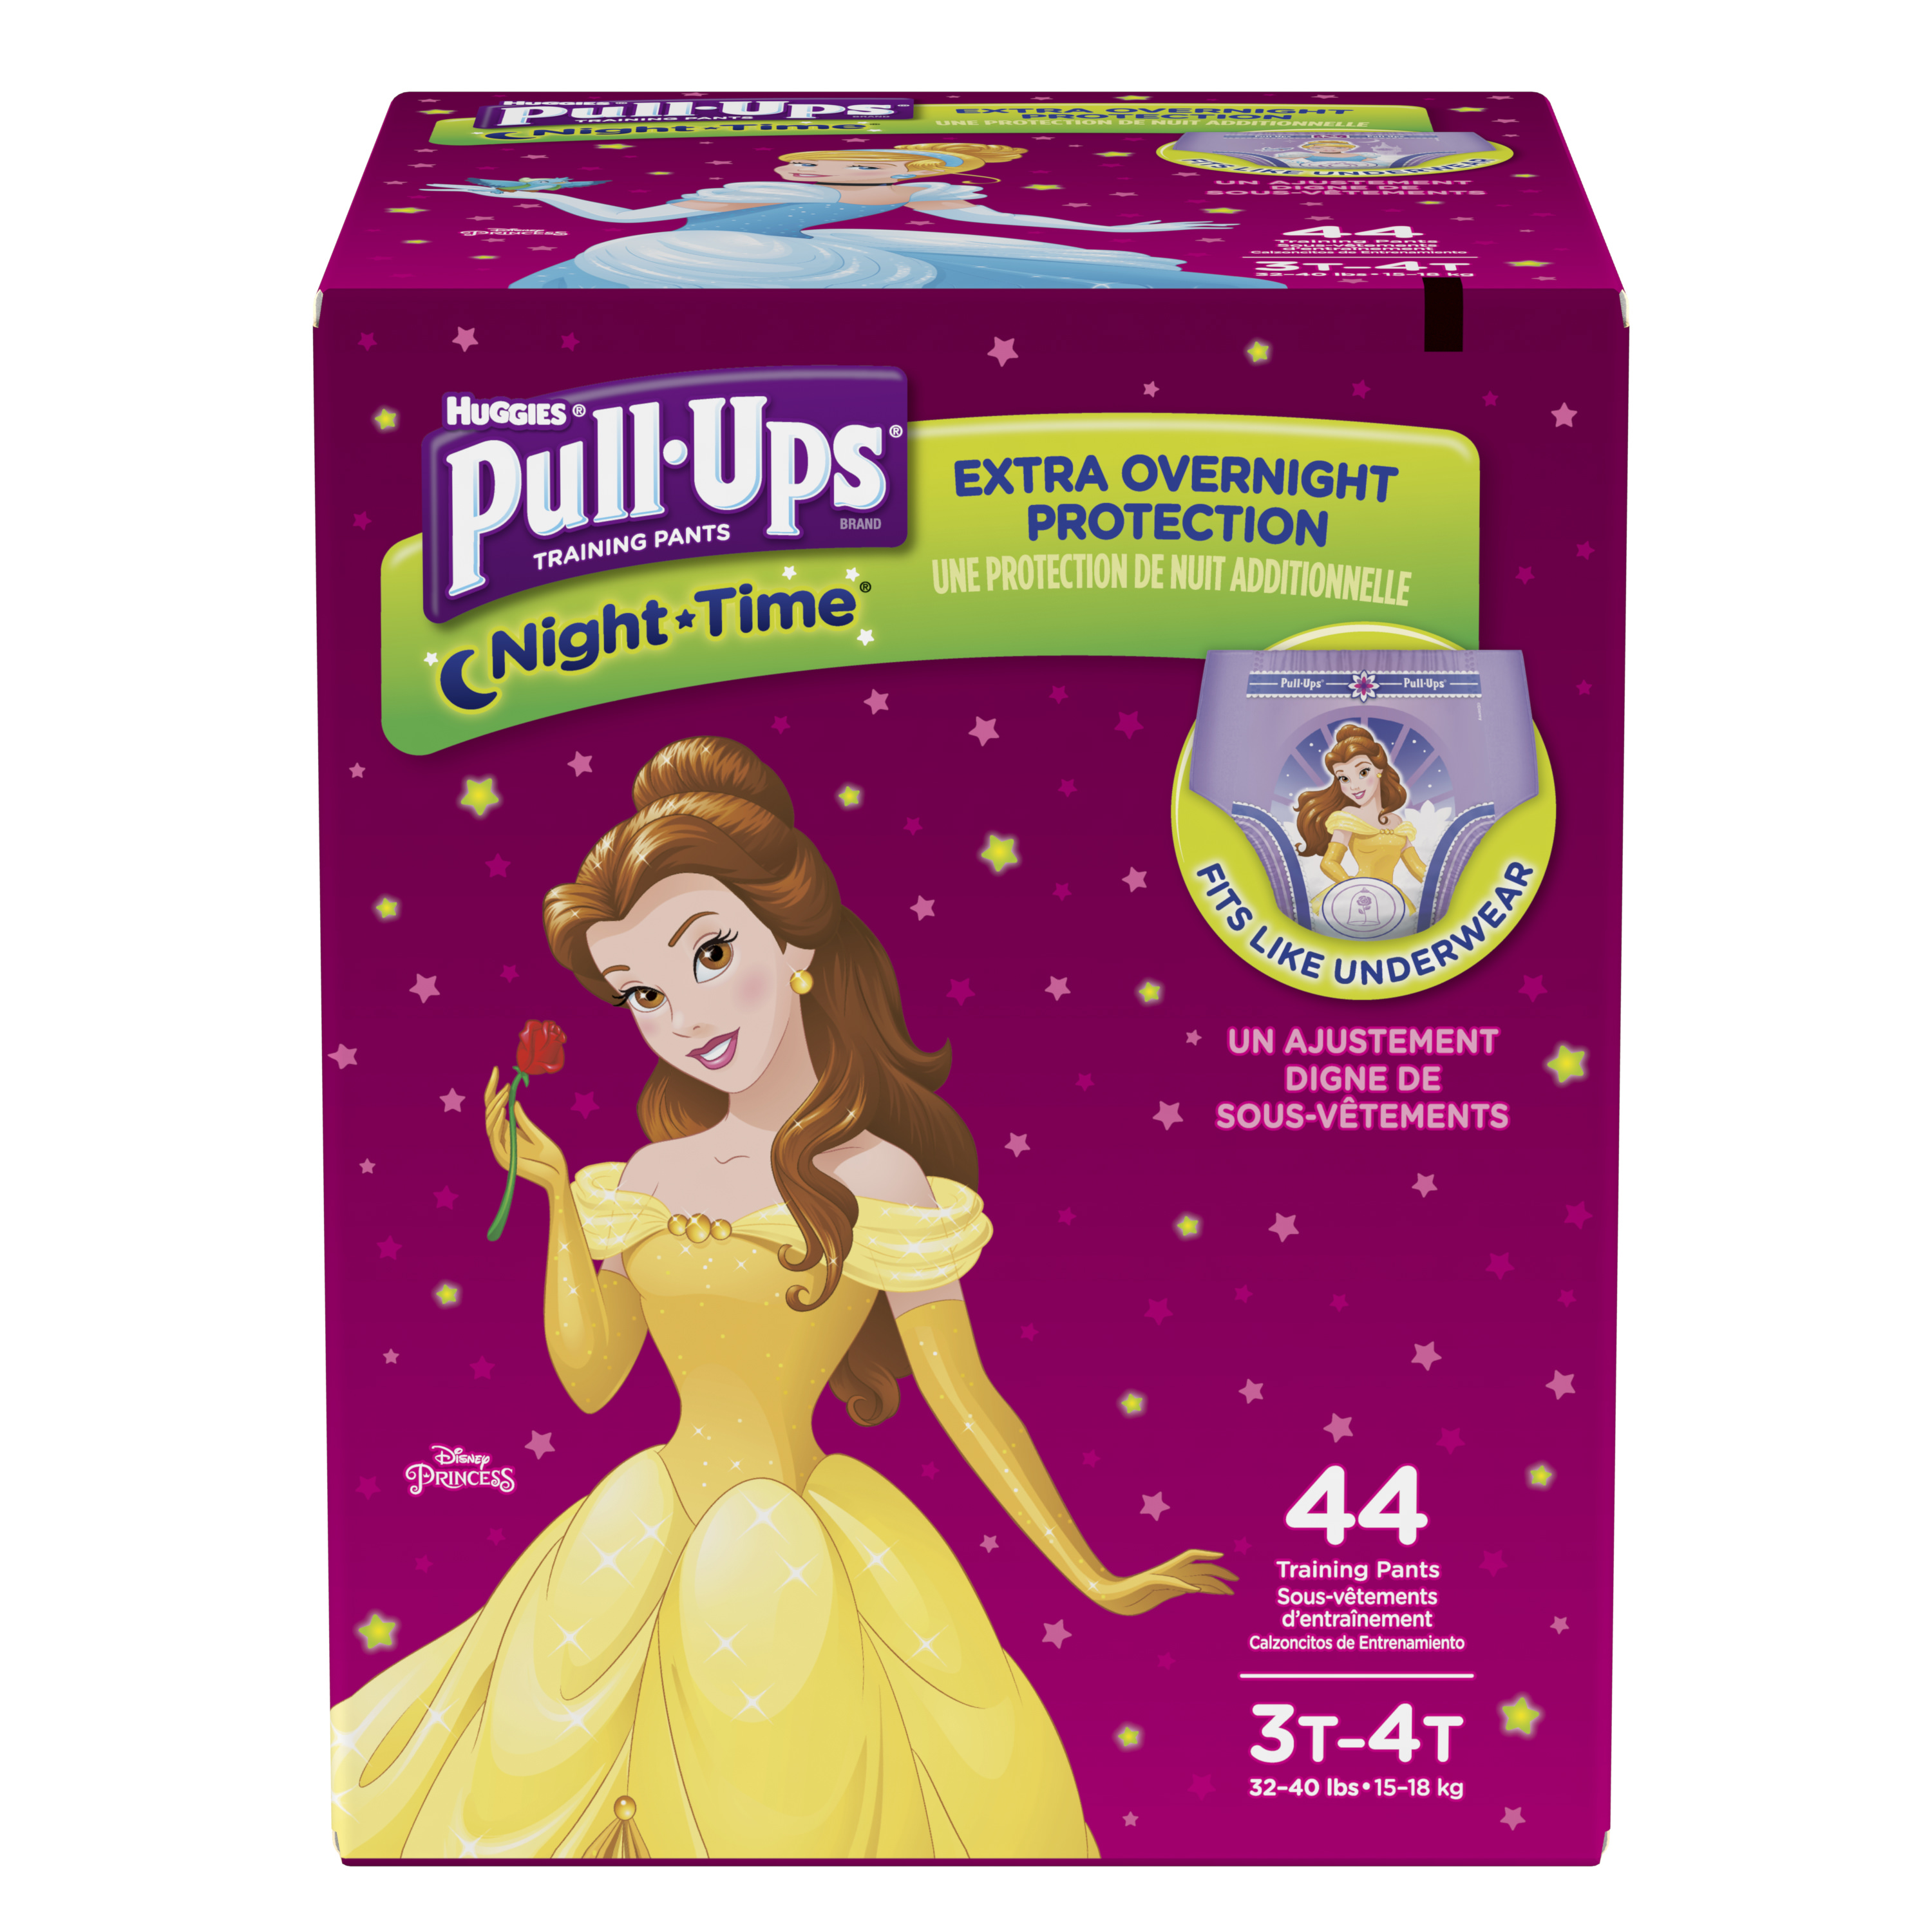 Pull-Ups Night-Time Potty Training Pants for Girls, 3T-4T (32-40 lb.), 44 Ct. (Packaging May Vary)